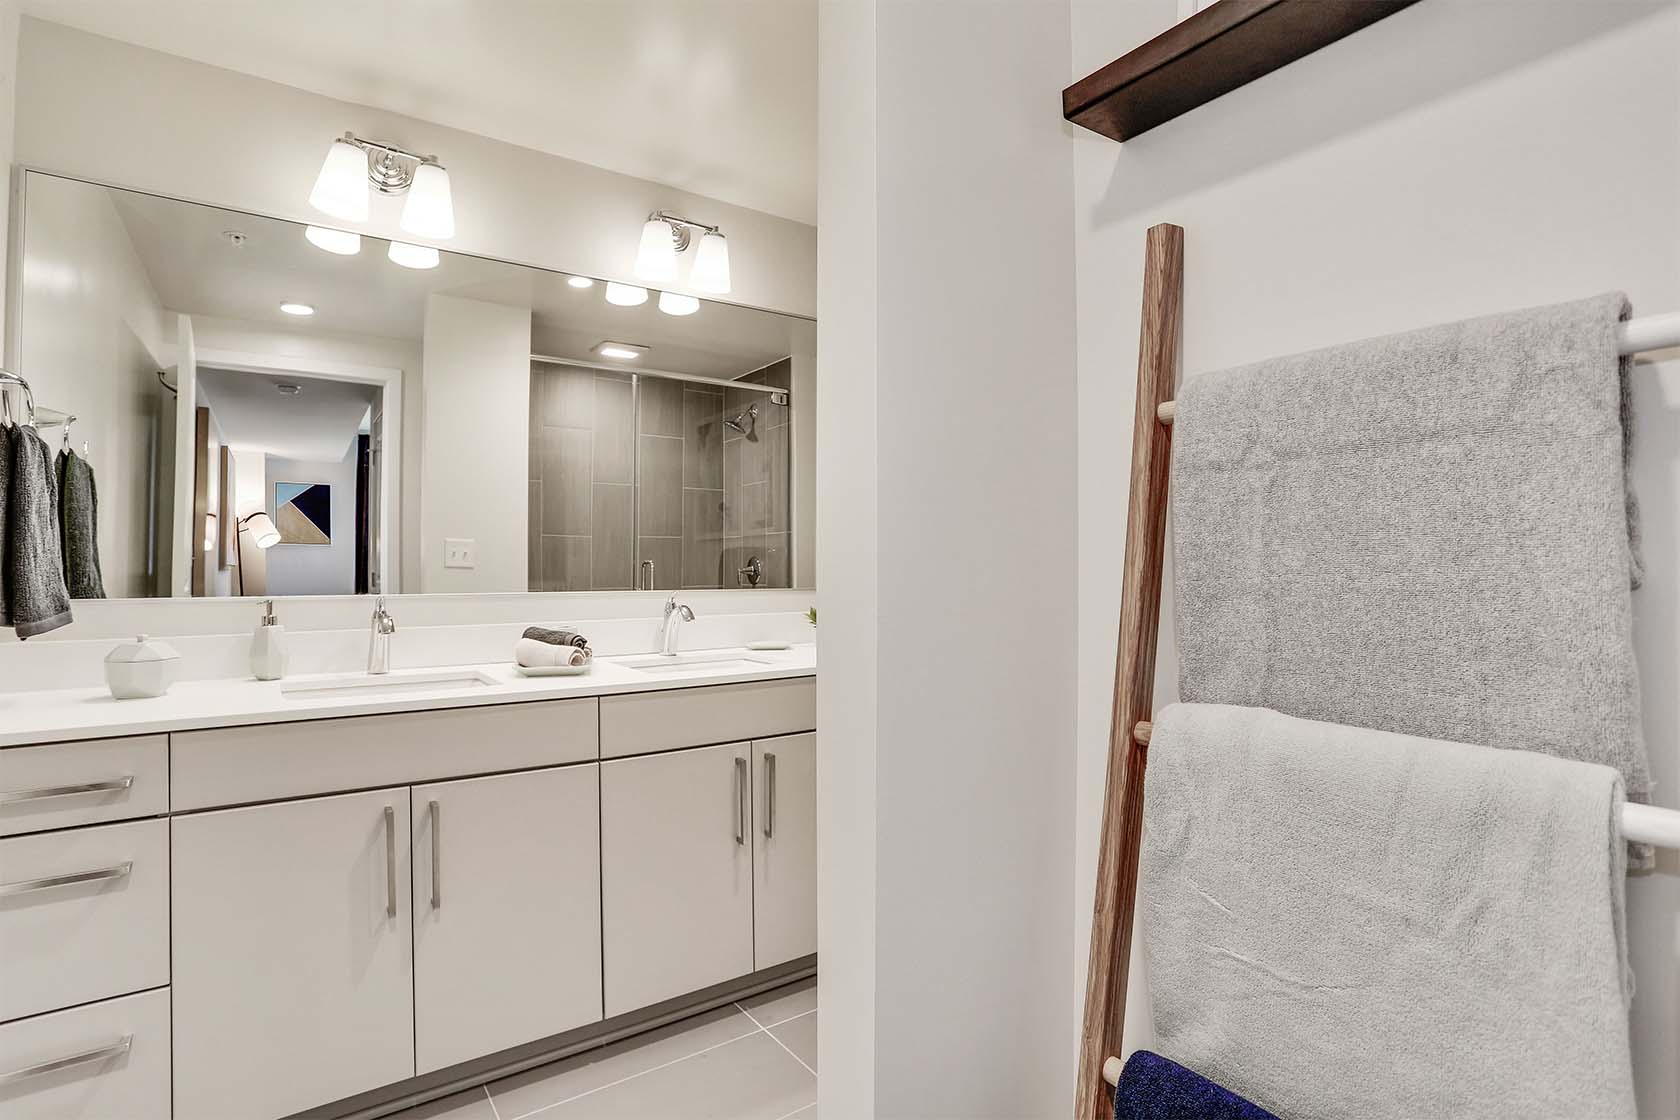 Parc Riverside West bathroom with grey cabinetry, white countertops, double vainty with long mirror, and towel rack